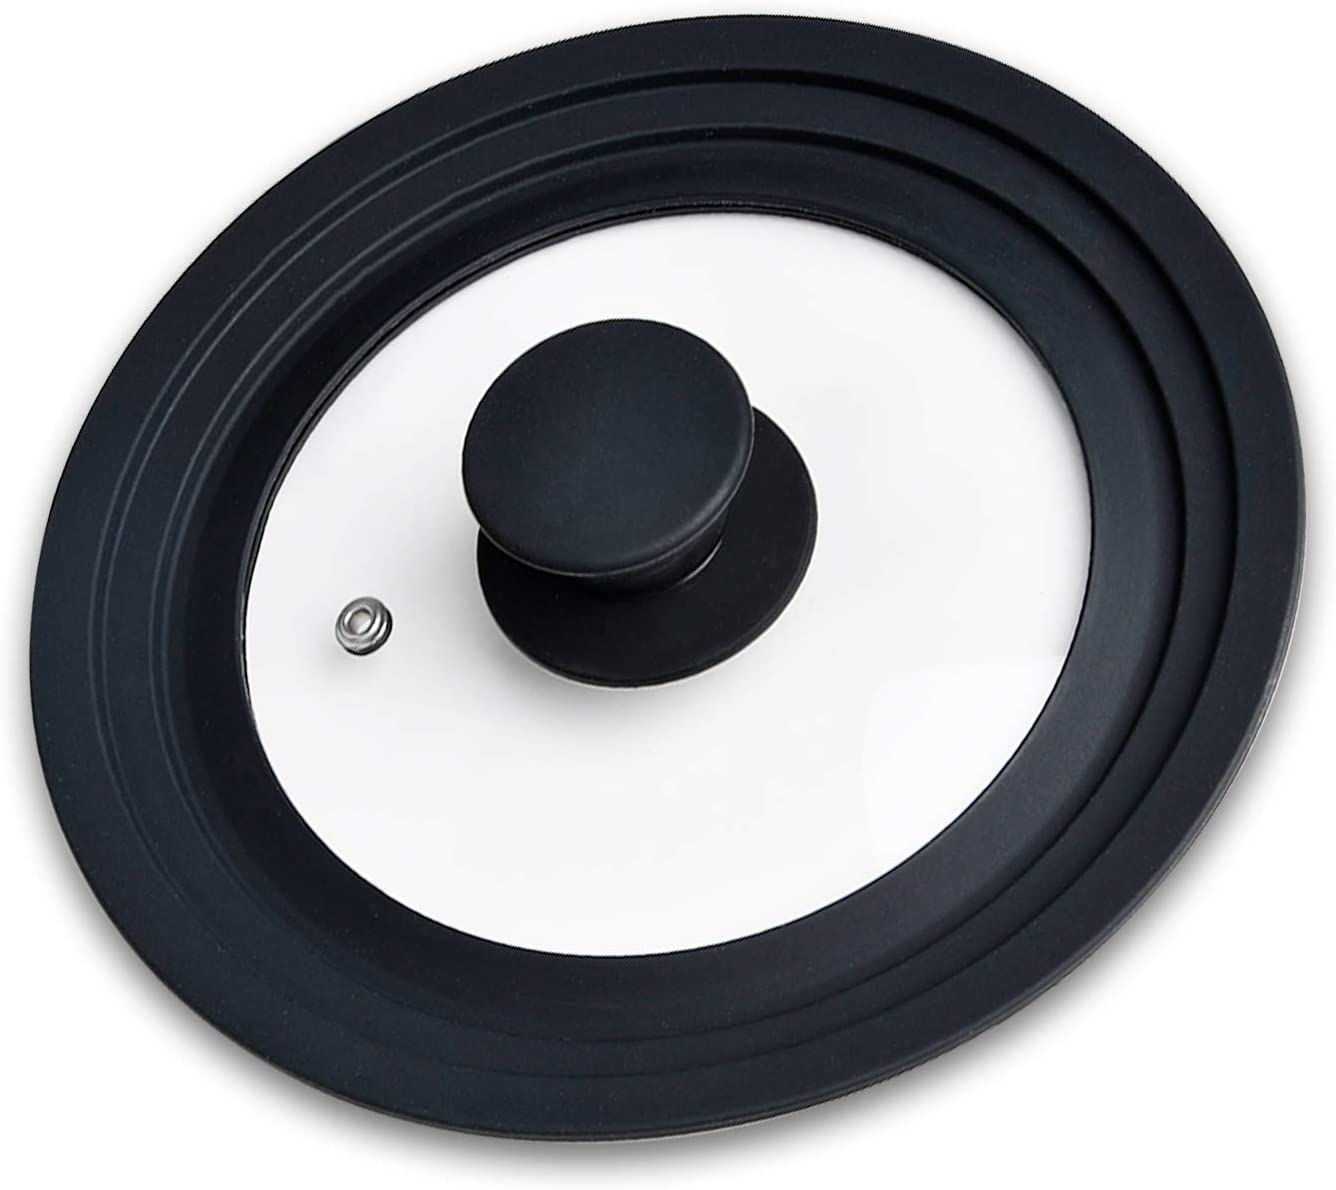 Pot Lid Akamino Universal Lids for Pots, Pans and Skillets Tempered Glass Heat Resistant Silicone Rim fits 6,7,8 Inch Cookware Replacement Lids (Black)